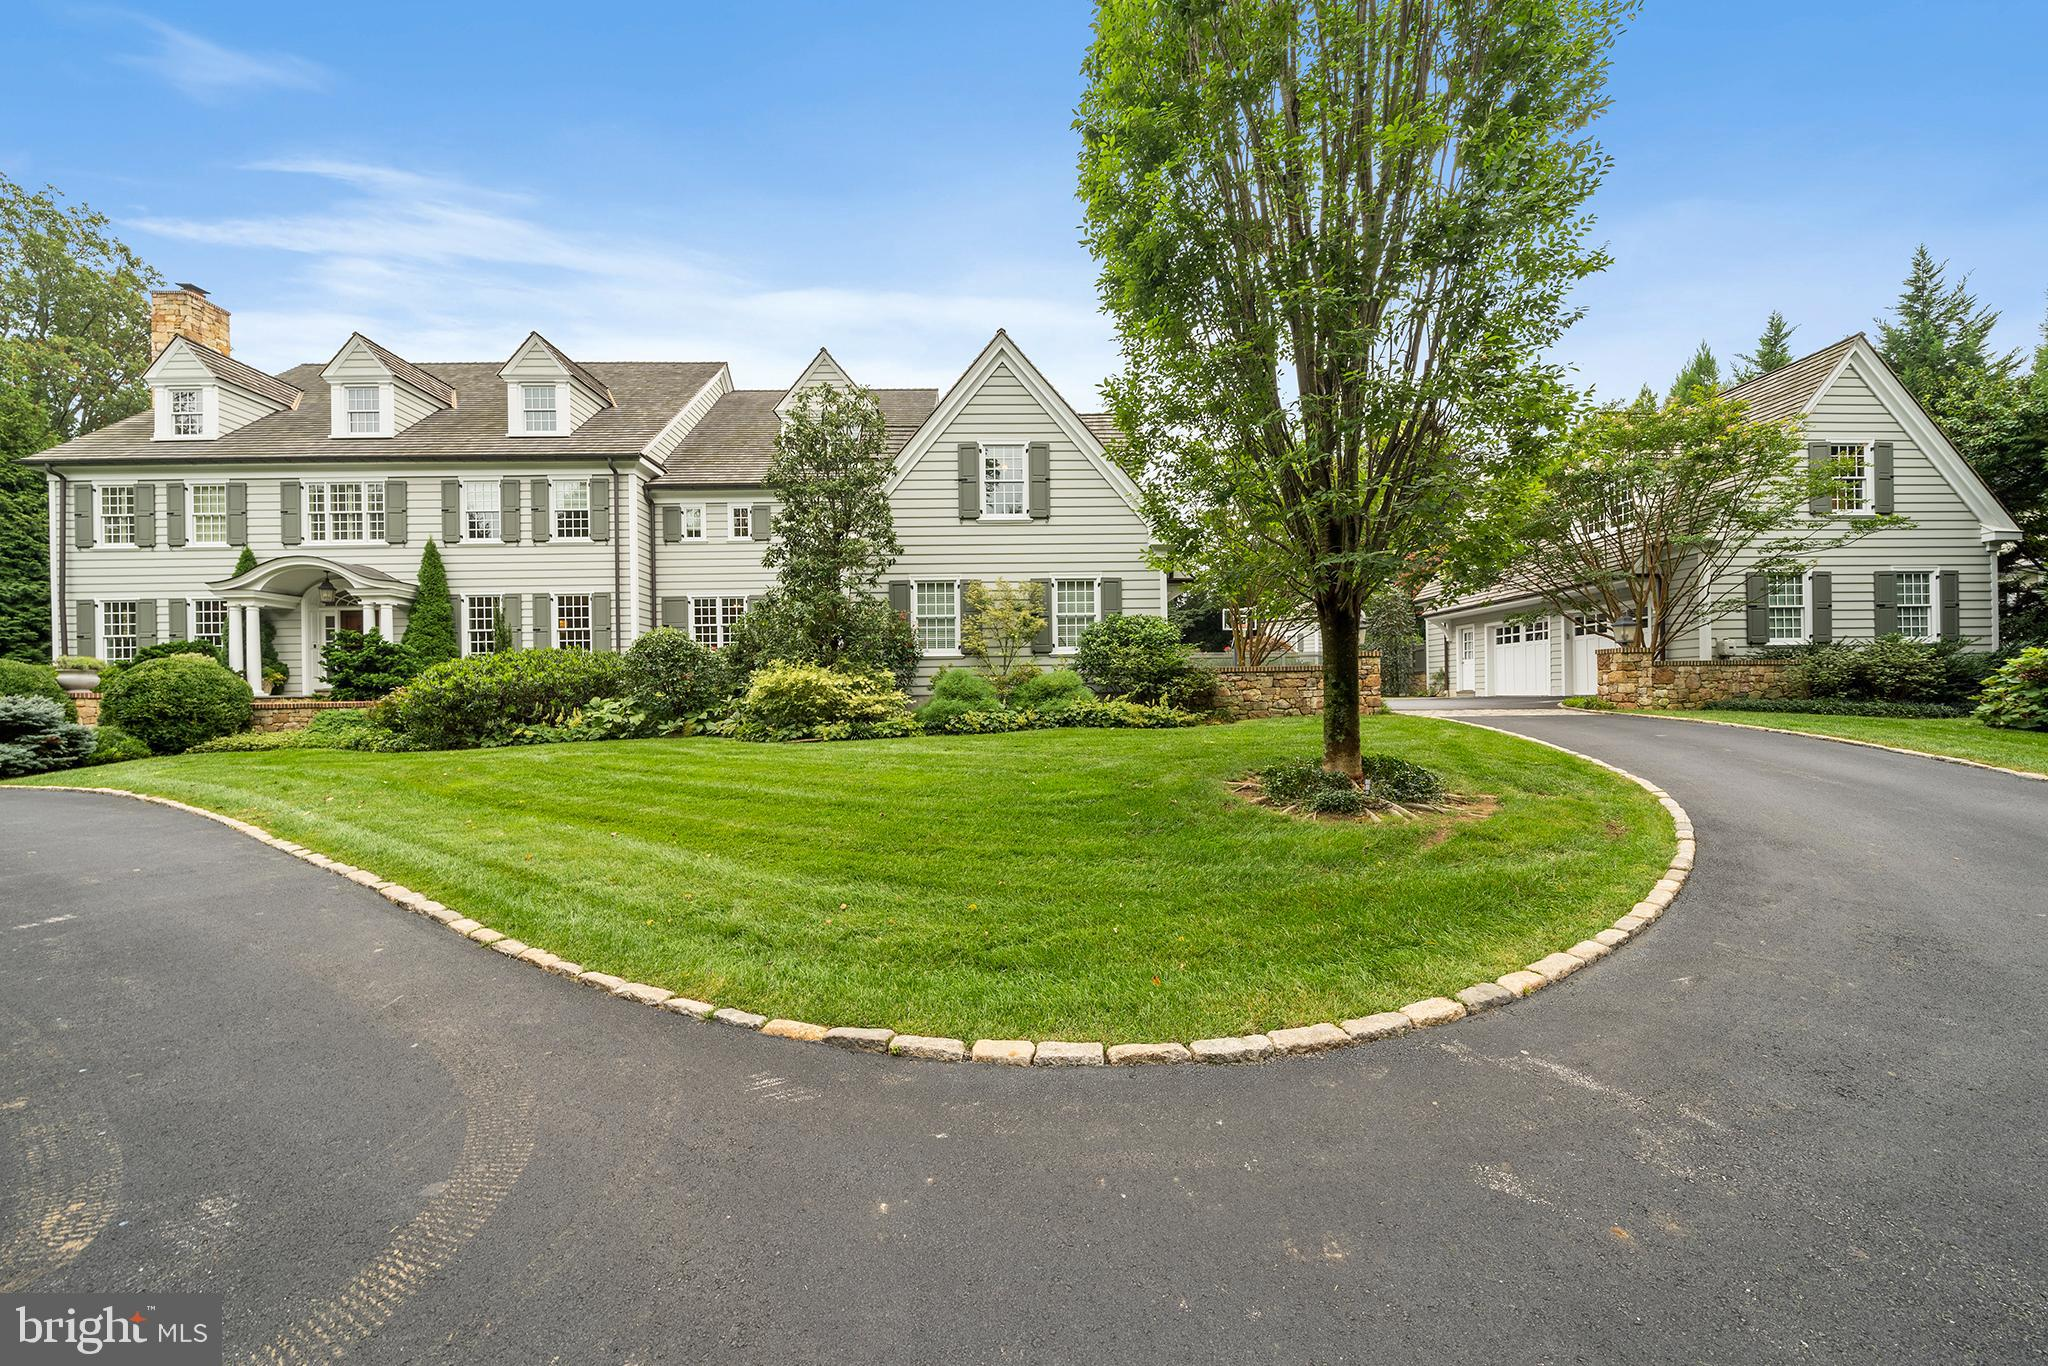 """A cool, 'New classic' w/ one of the most well-considered & smartly delivered interior plans in arguably the most highly prized location in all of Radnor township. 25  Orchard Lane, offers the hard-to-achieve blend of warmth through expertly selected finishes such as character grade flooring, hand-hewed beams, reclaimed wood doors as well as engaging contemporary elements including large format tile, chic lighting & bright connected spaces. A generous fireside formal LR & elegant DR flow from the wide Center Hall. Fully paneled, & positioned off the back of the house a handsome Library/Office glows with an embedded saltwater aquarium on one wall & a gas fireplace on the other. Cross the  Foyer & Hall to the stunning custom Kitchen, Breakfast Rm & vaulted ceiling Family Rm. In the Kitchen, rich, contemporary profile cabinets & stone counters meet the slightly iridescent backsplash creating a sophisticated but immediately welcoming space. A suite of highest level appliances (double Wolf ovens, two Bosch dishwashers, 6 burner Wolf gas cooktop, Sub-Zero refrig &freezing) forms the perimeter, surrounding a spectacular oversized seated island. Additional storage & utility are found in the Walk-in Pantry, another wall of cabinetry & under-counter wine chiller. Steps away & brightened by custom windows & french doors, the Breakfast Rm features a peaked ceiling  & opens to a dramatic Family Rm w/ floor to ceiling stone fireplace, custom shelving & outside exit to the sweeping rear stone terrace. W/ an eye towards organization & demand for at-home workspaces, 2 different Family Offices are located off the Mudrm/Garage entrance. One office is designed w/ two desks on either side of a wide window & the other enjoys views of the Courtyard & features a custom dog door & walk-in closet, ideal for concealing printers & supplies. A full Laundry w/ dog bath, Costco-sized storage closet & """"Bike room"""" from the attached  2 car Garage underscore the superior & informed design of the home."""